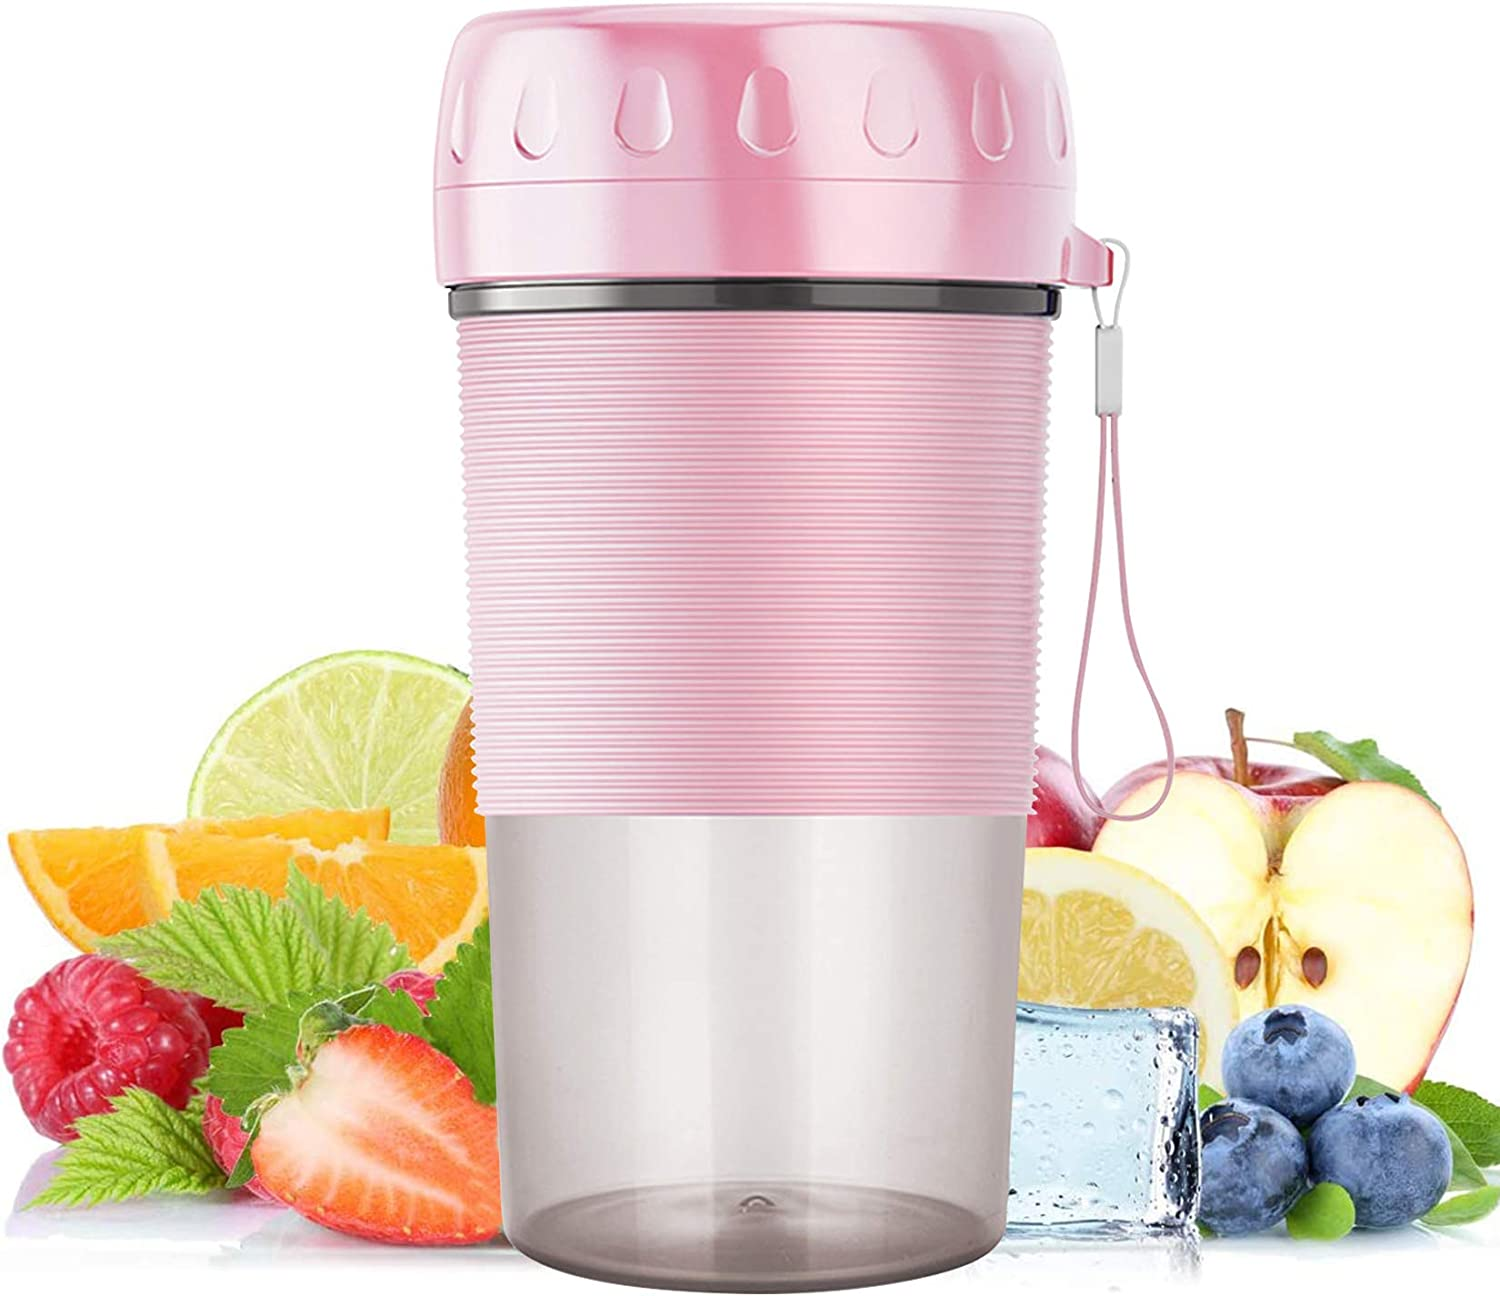 Portable Blender, Personal Blender Juicer Cup, USB Rechargeable Juicer Cup Bottle Mini Travel Fruit Shaker 300ml Upgraded Blades for Home Office Sports Travel Picnic(Cherry Pink)